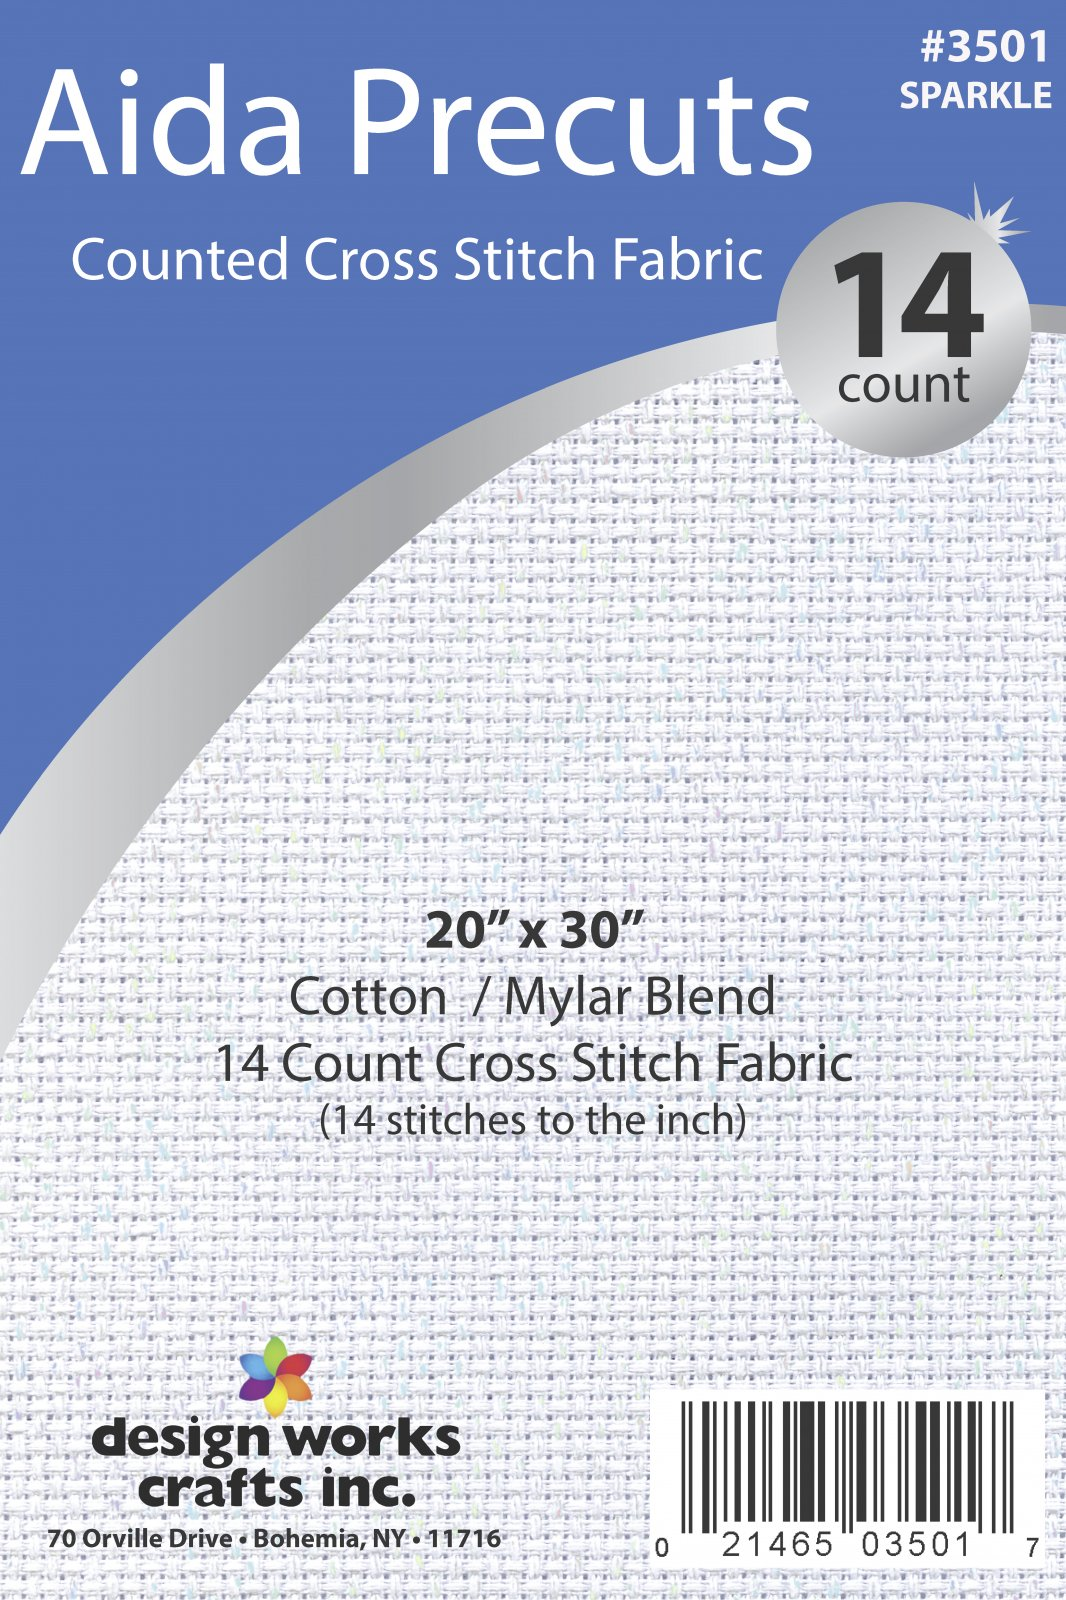 # 3501 - 14 Ct. Aida Pre-cut Counted Cross Stitch Fabric/Sparkle-White - 20 x 30